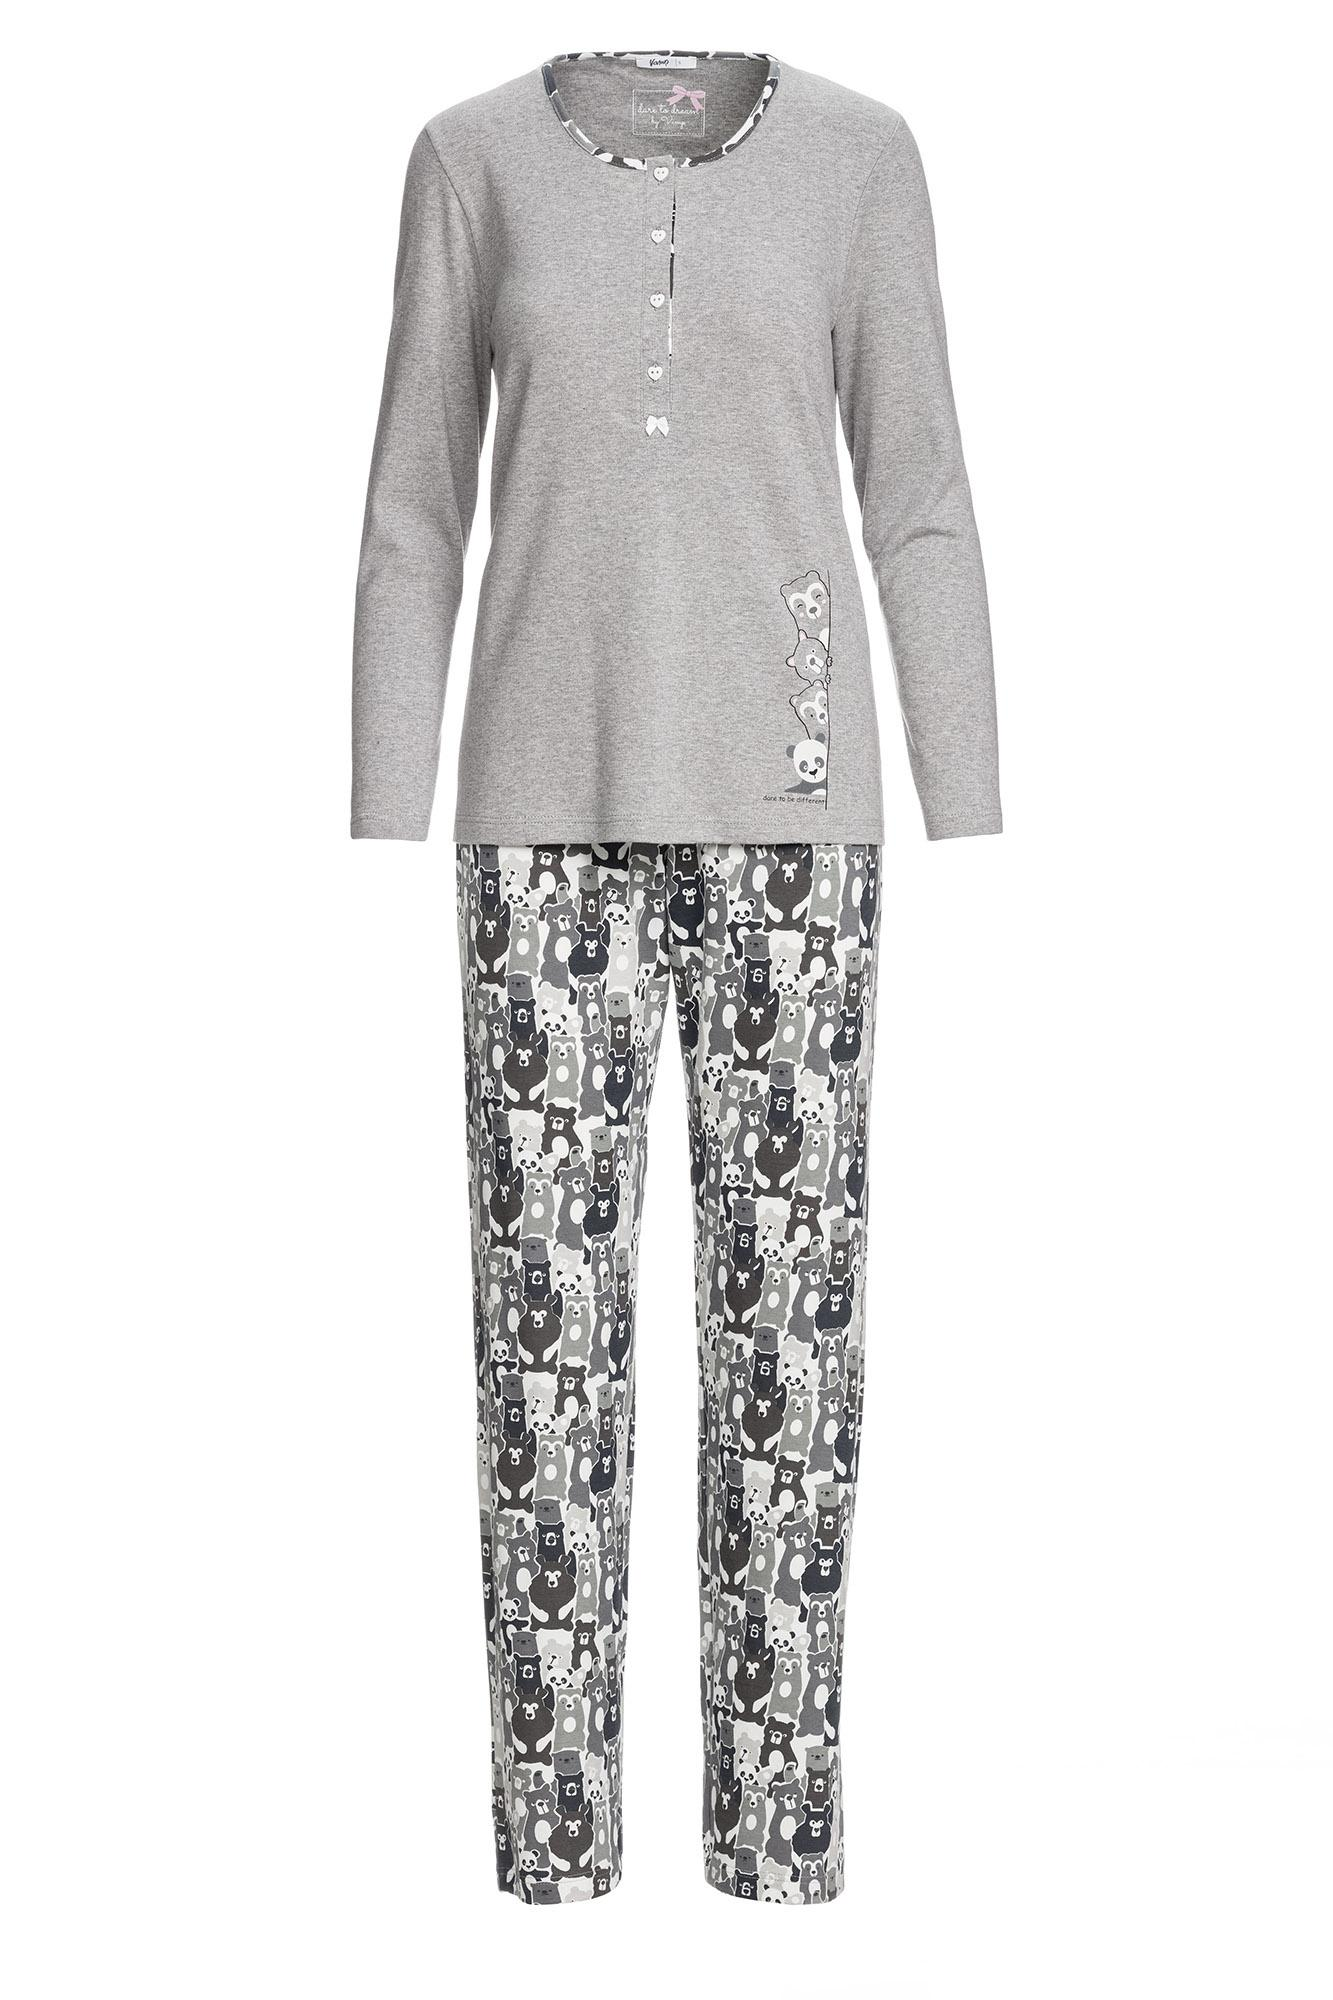 Women's Maternity Pyjamas